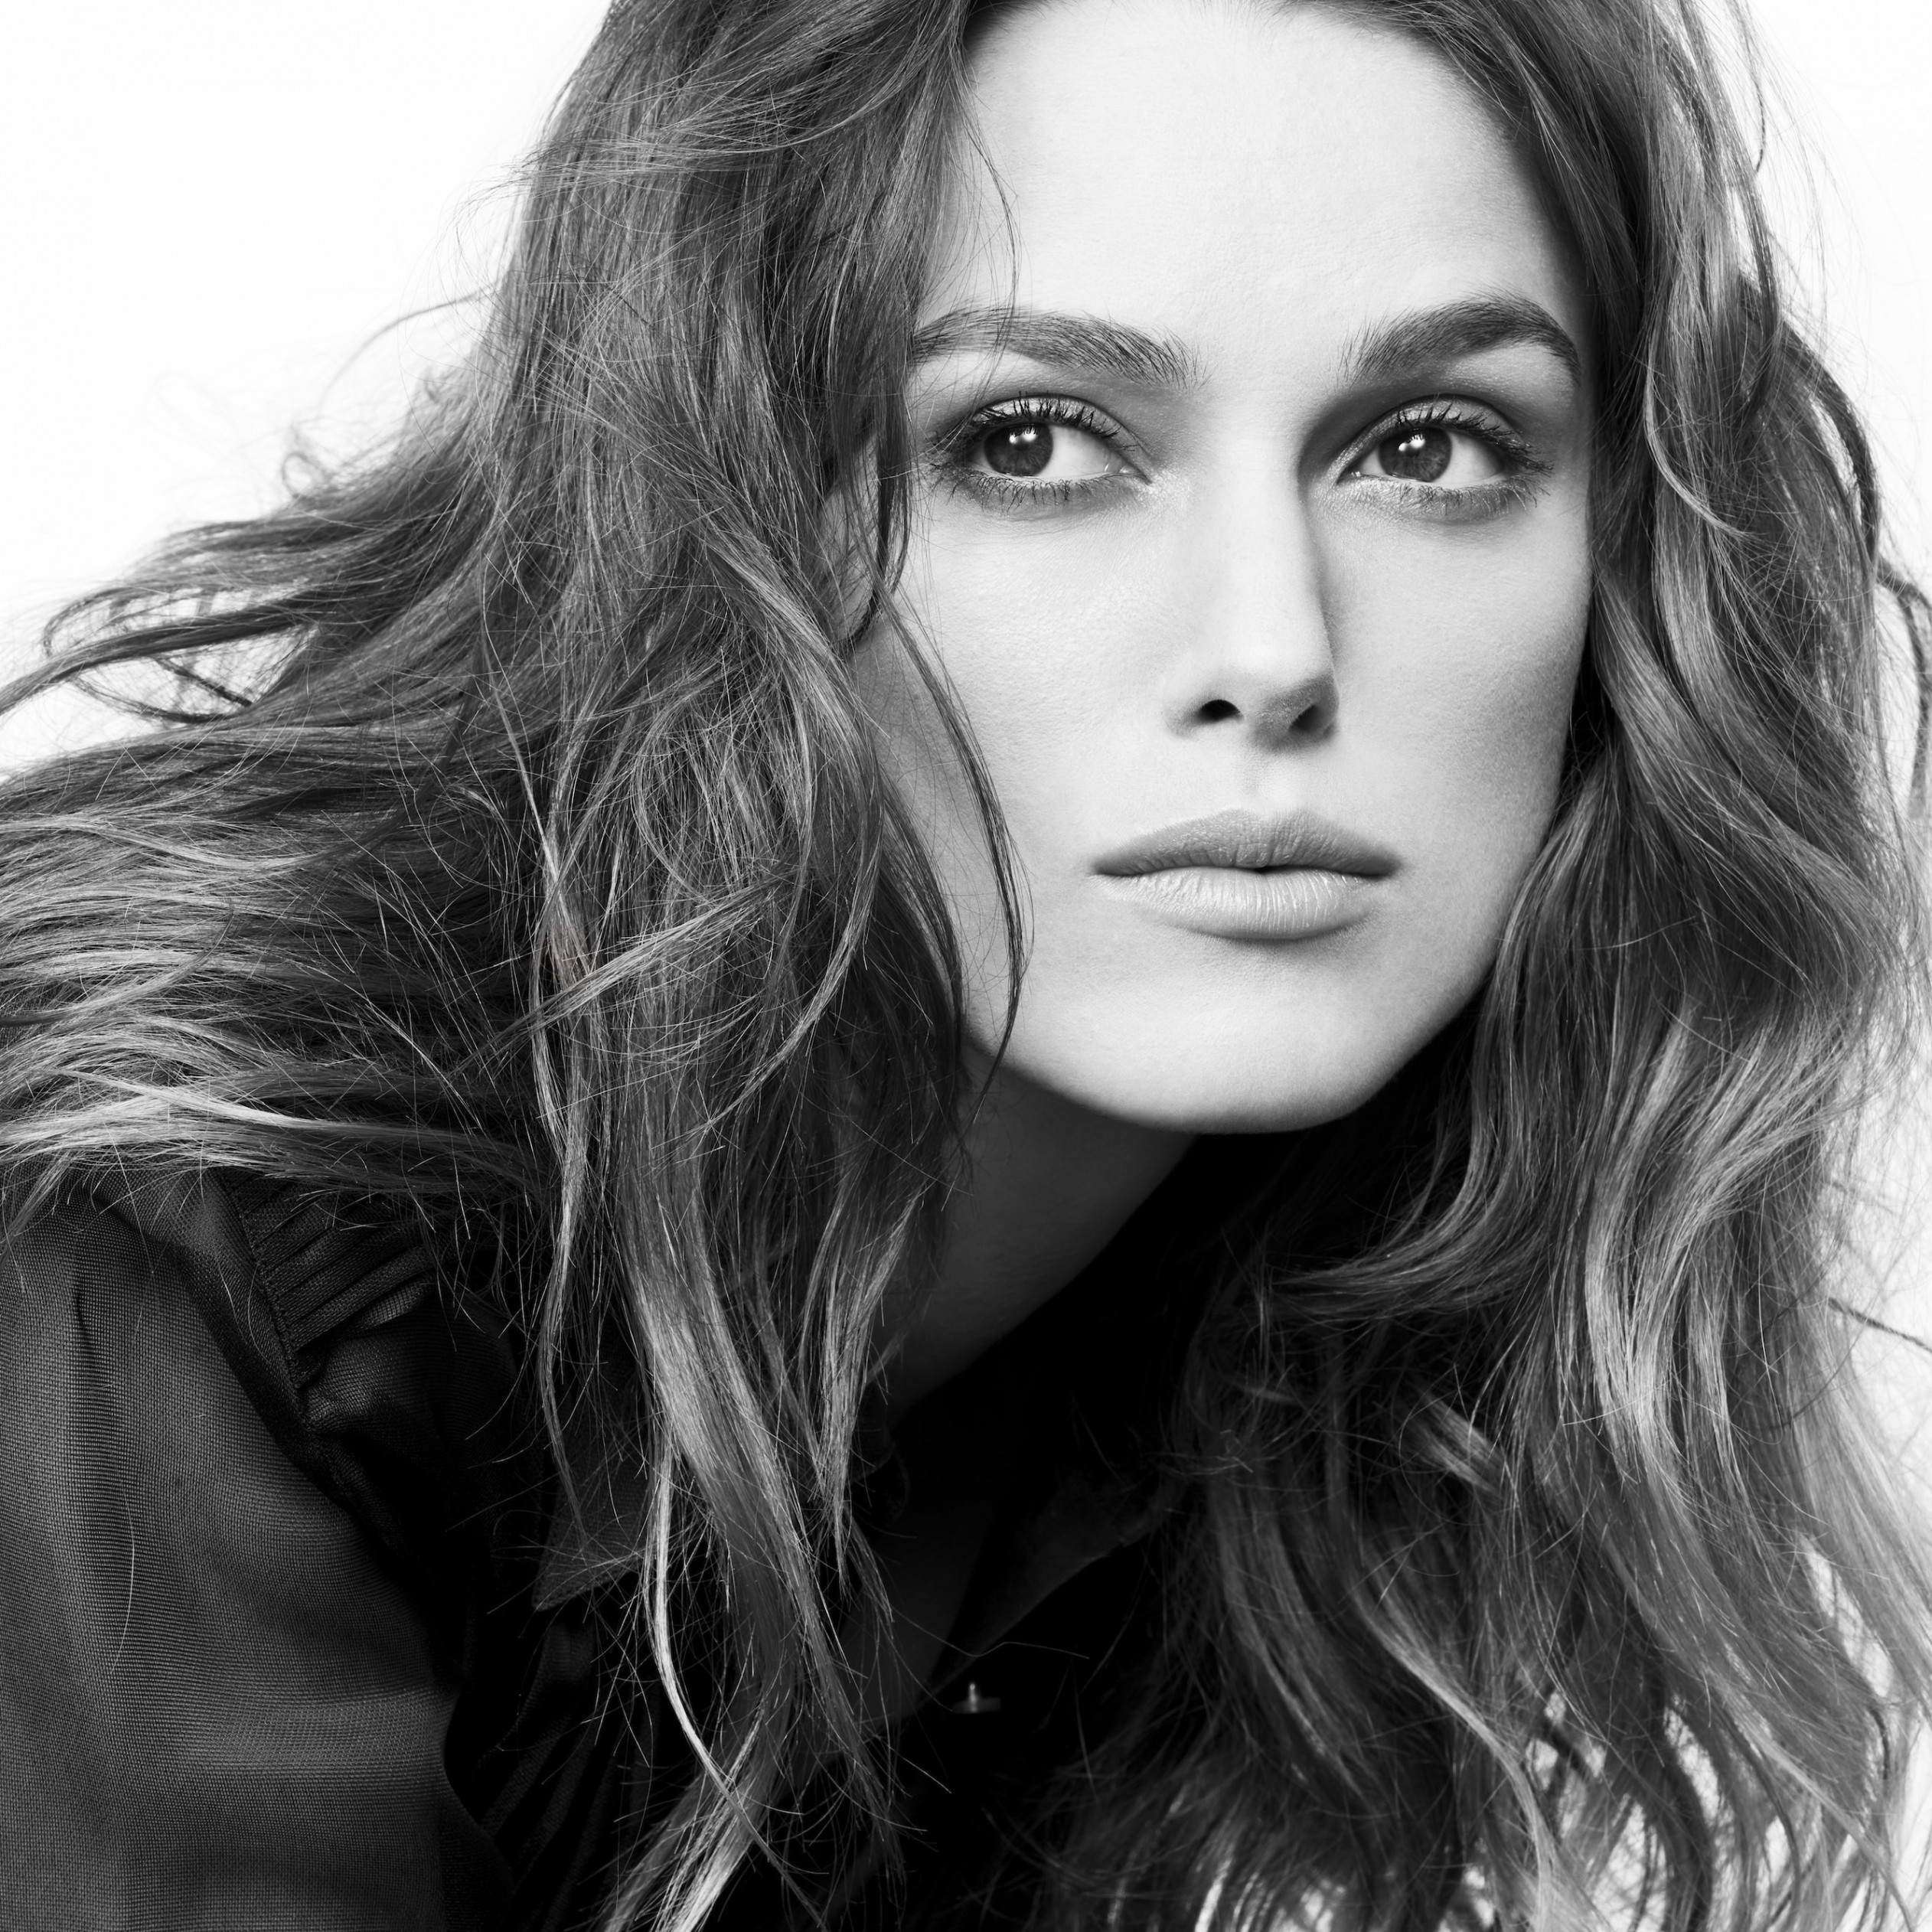 Keira Knightley in Black & White Wallpaper for Apple iPad 4